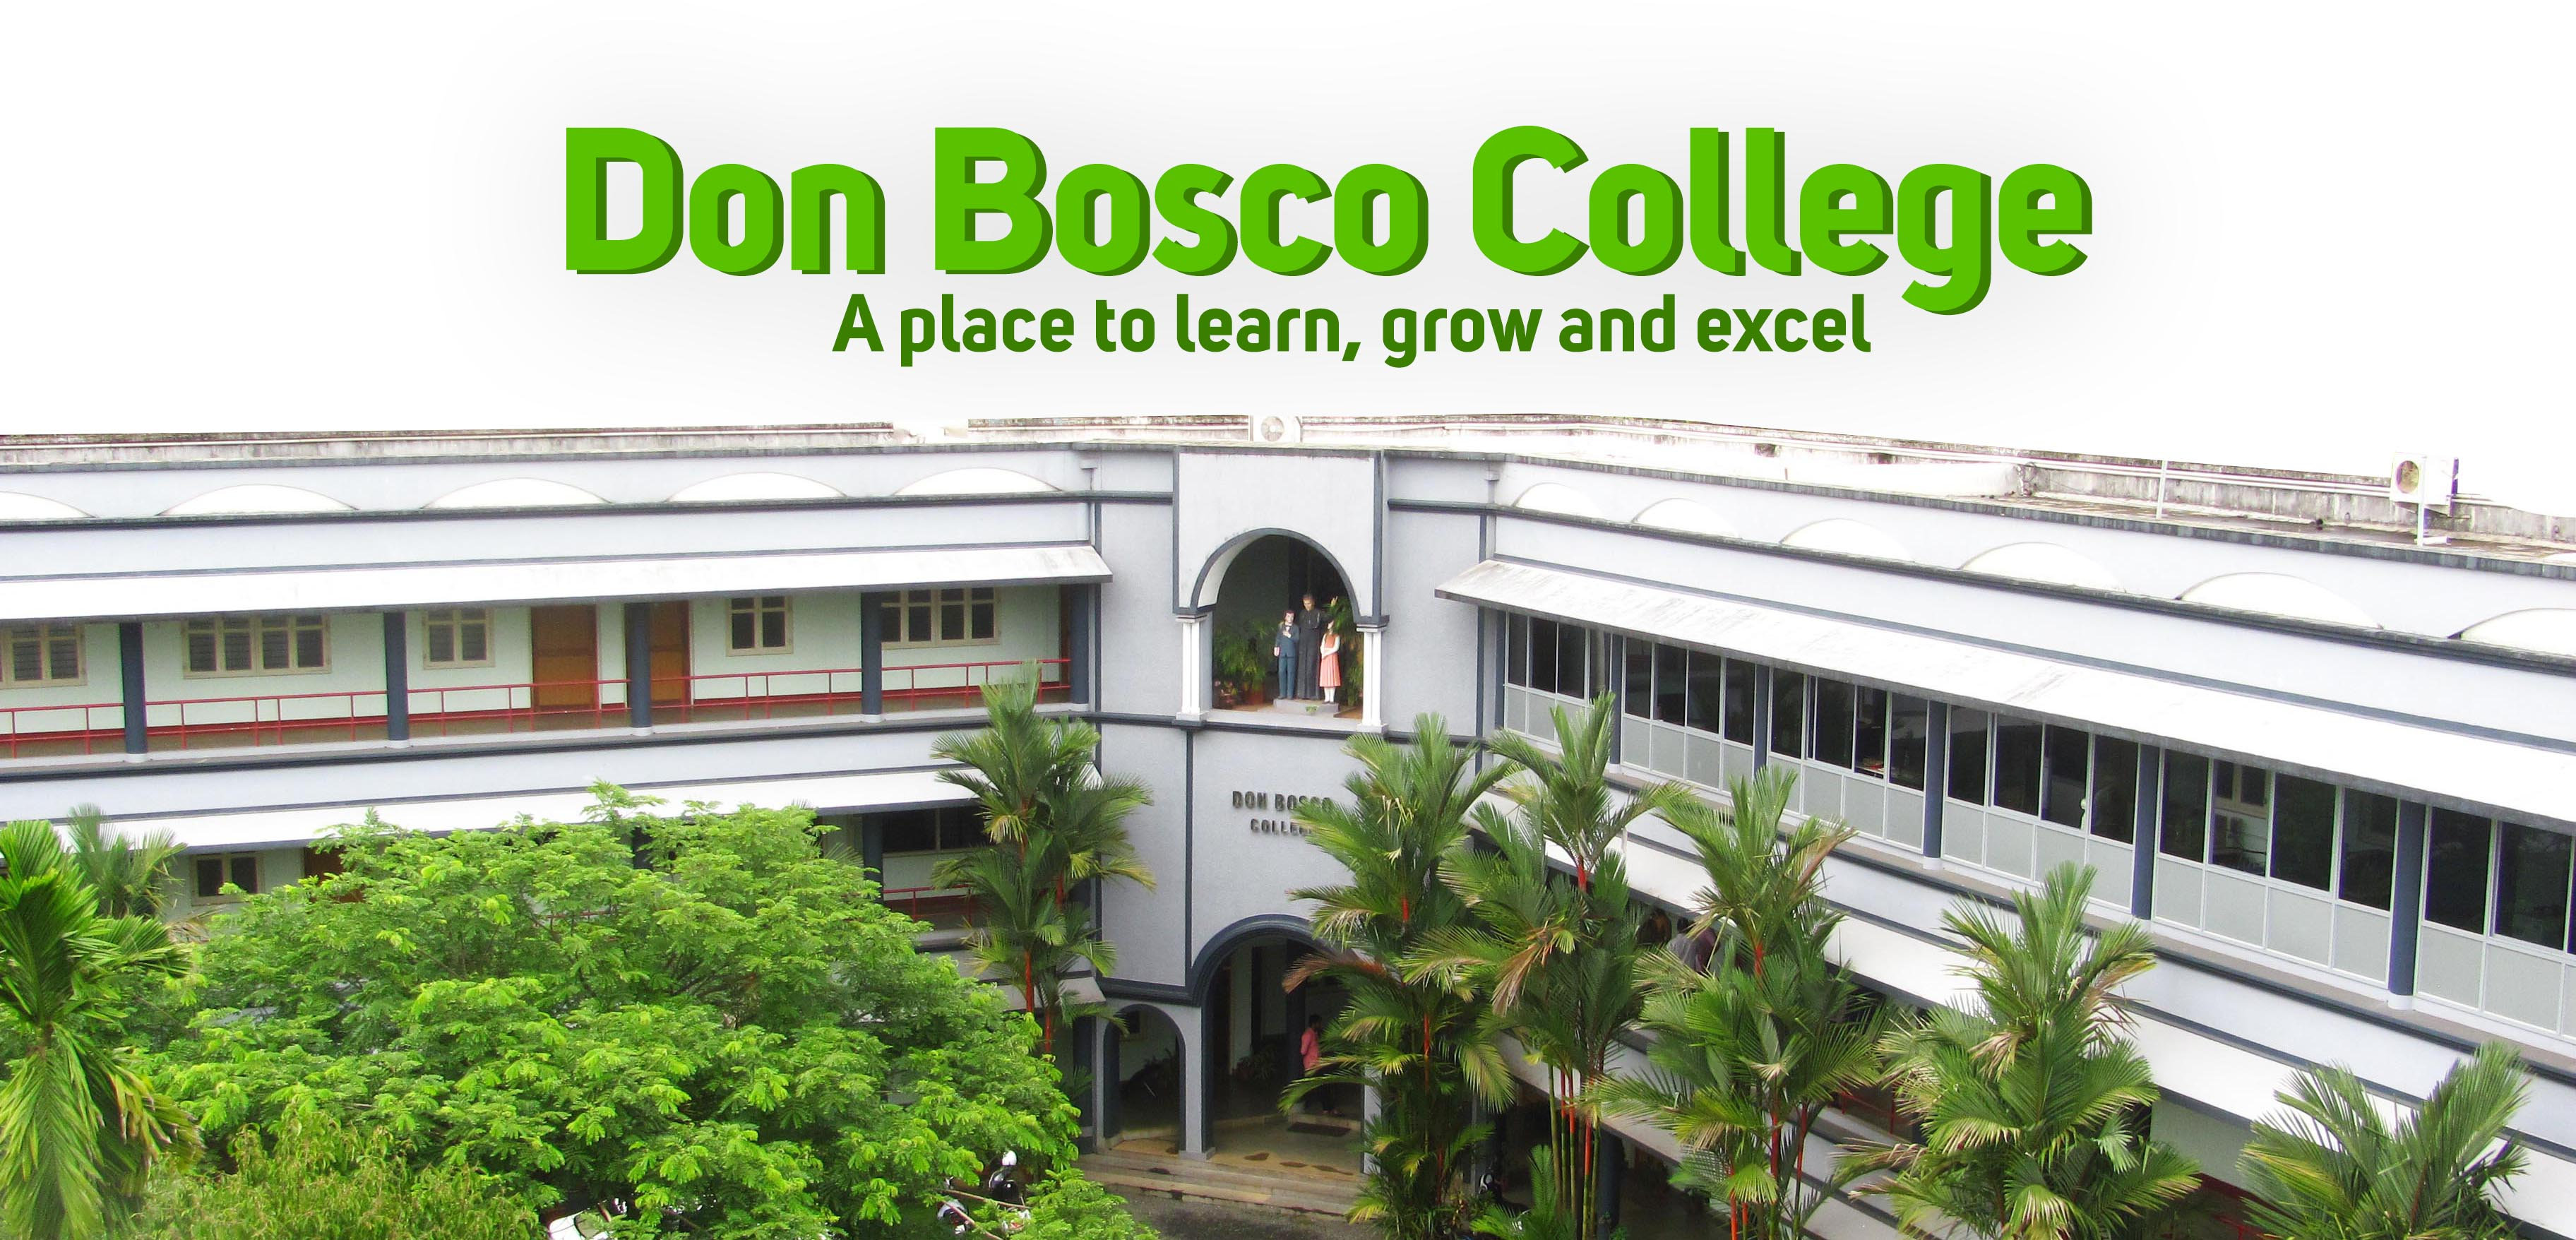 Don Bosco College for MCA in Kannur, Kerala